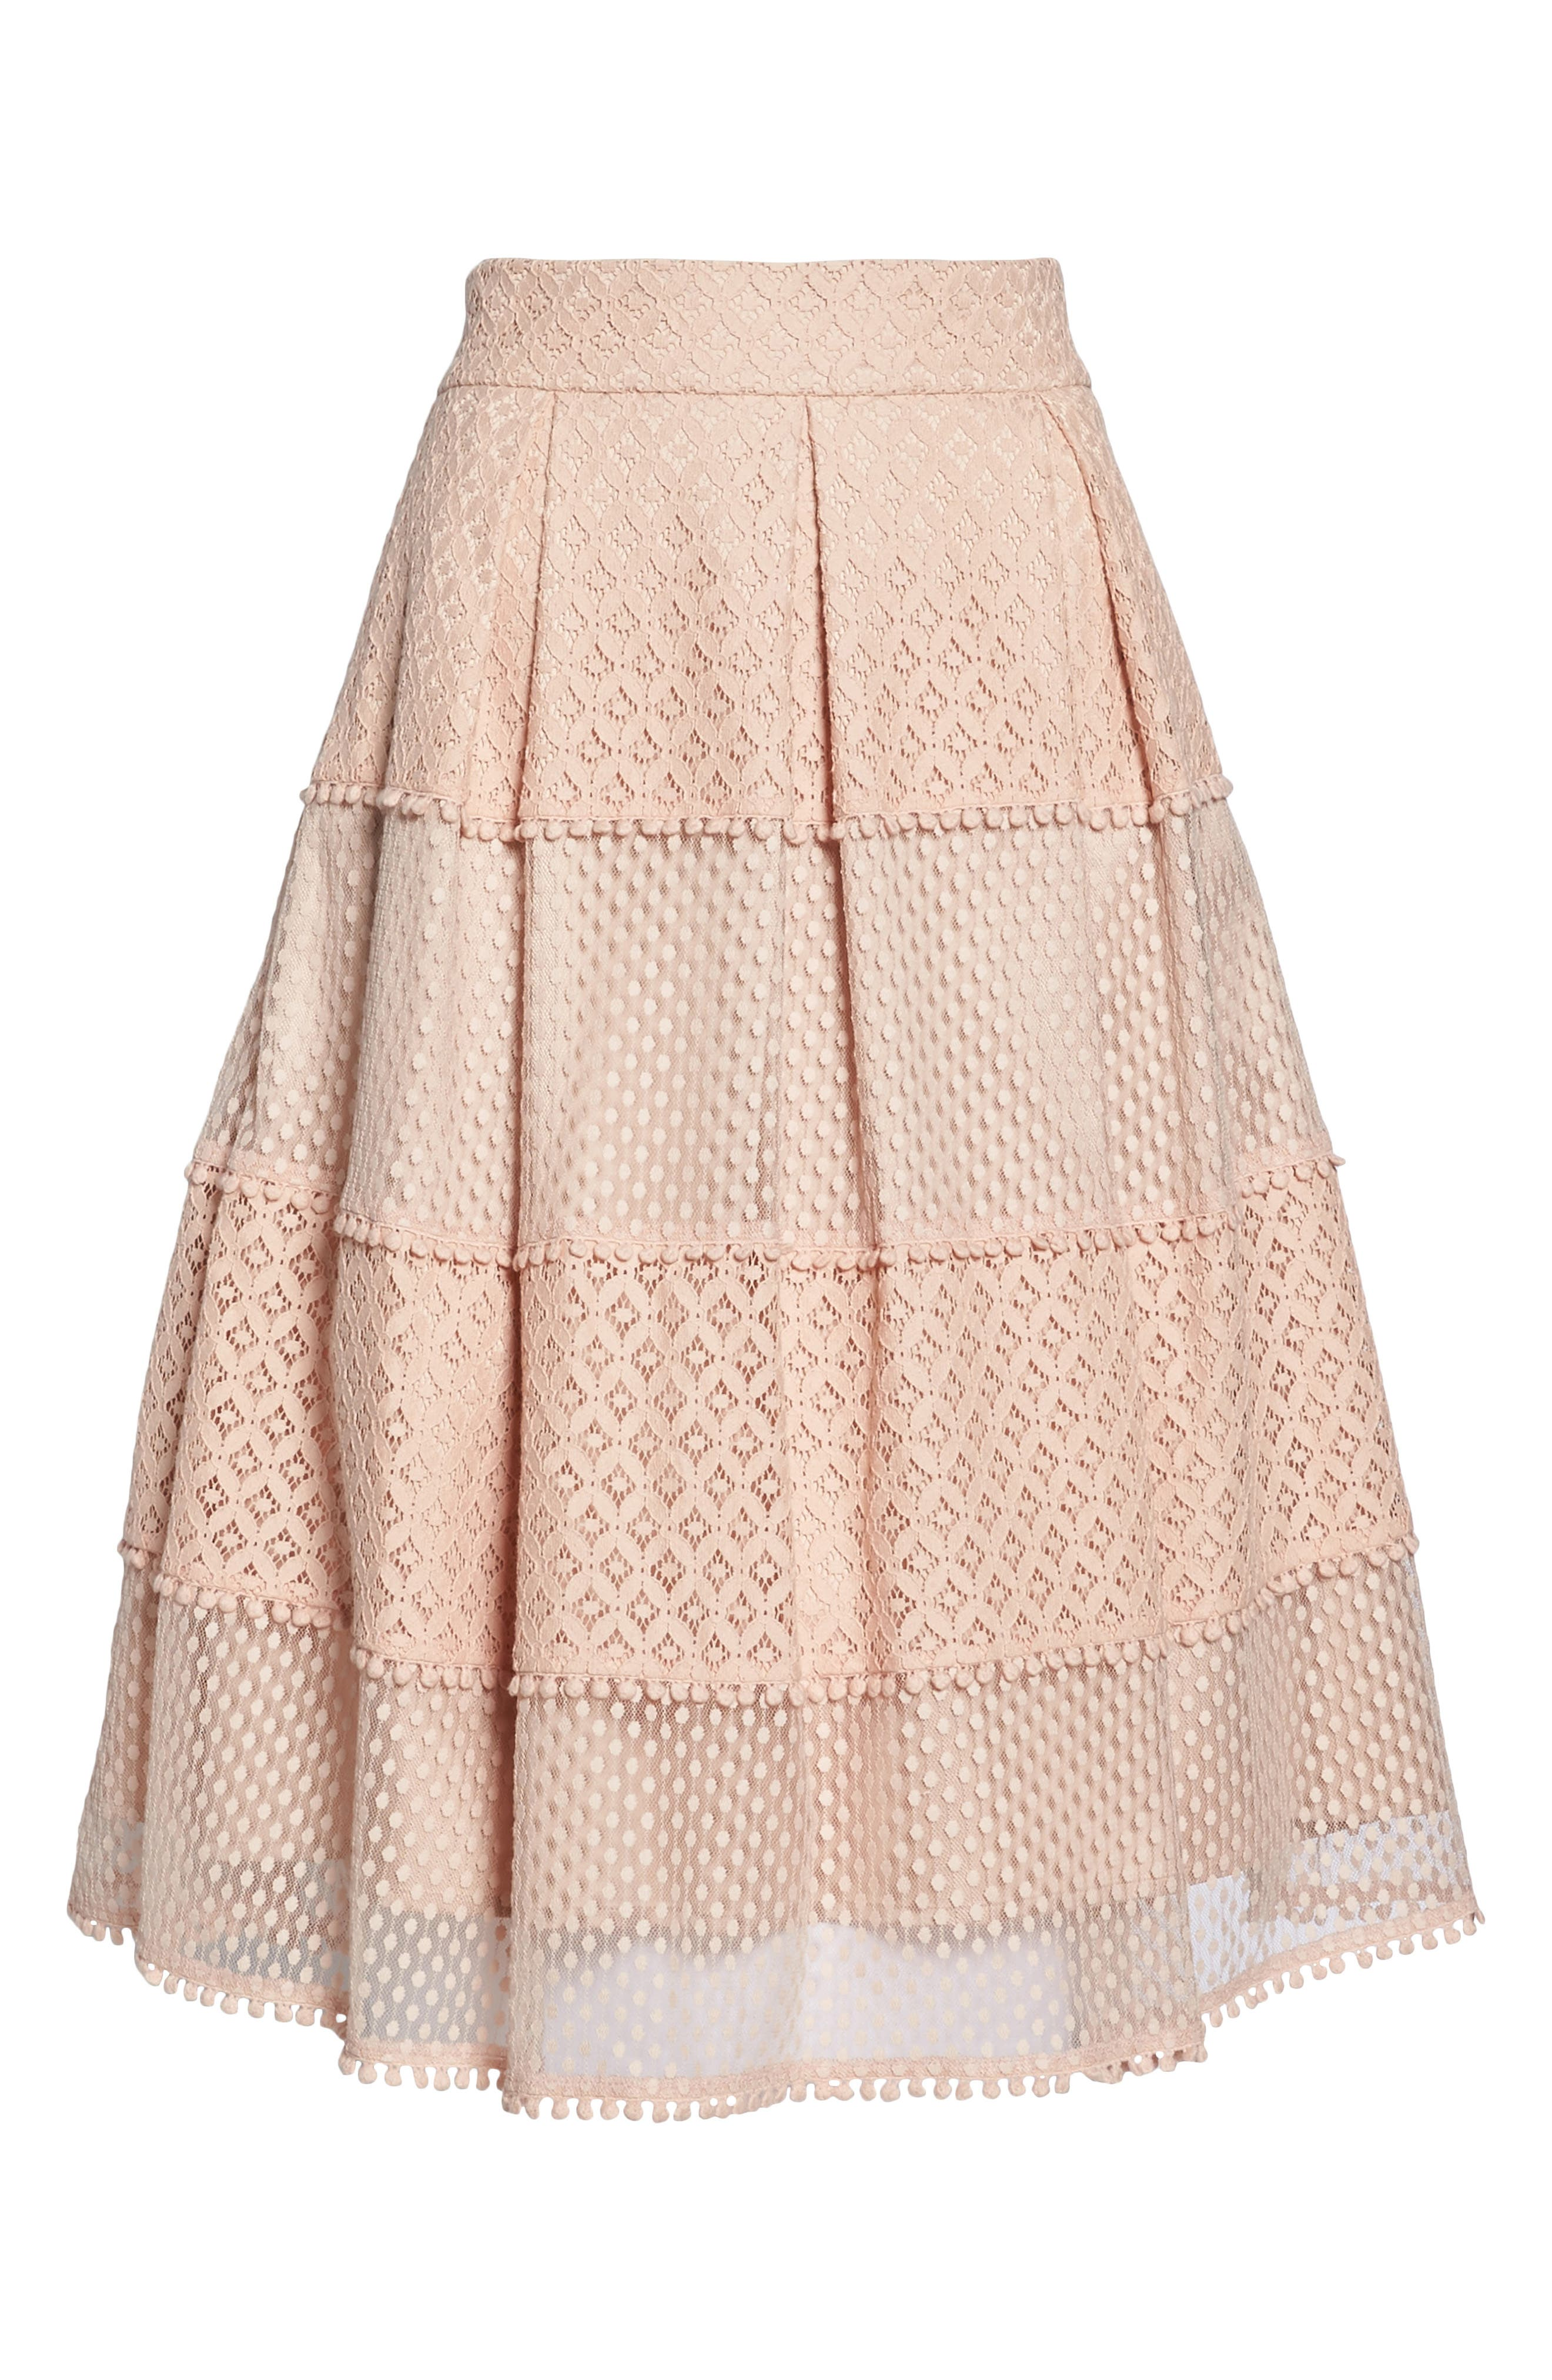 Banded Lace Midi Skirt,                             Alternate thumbnail 6, color,                             Blush